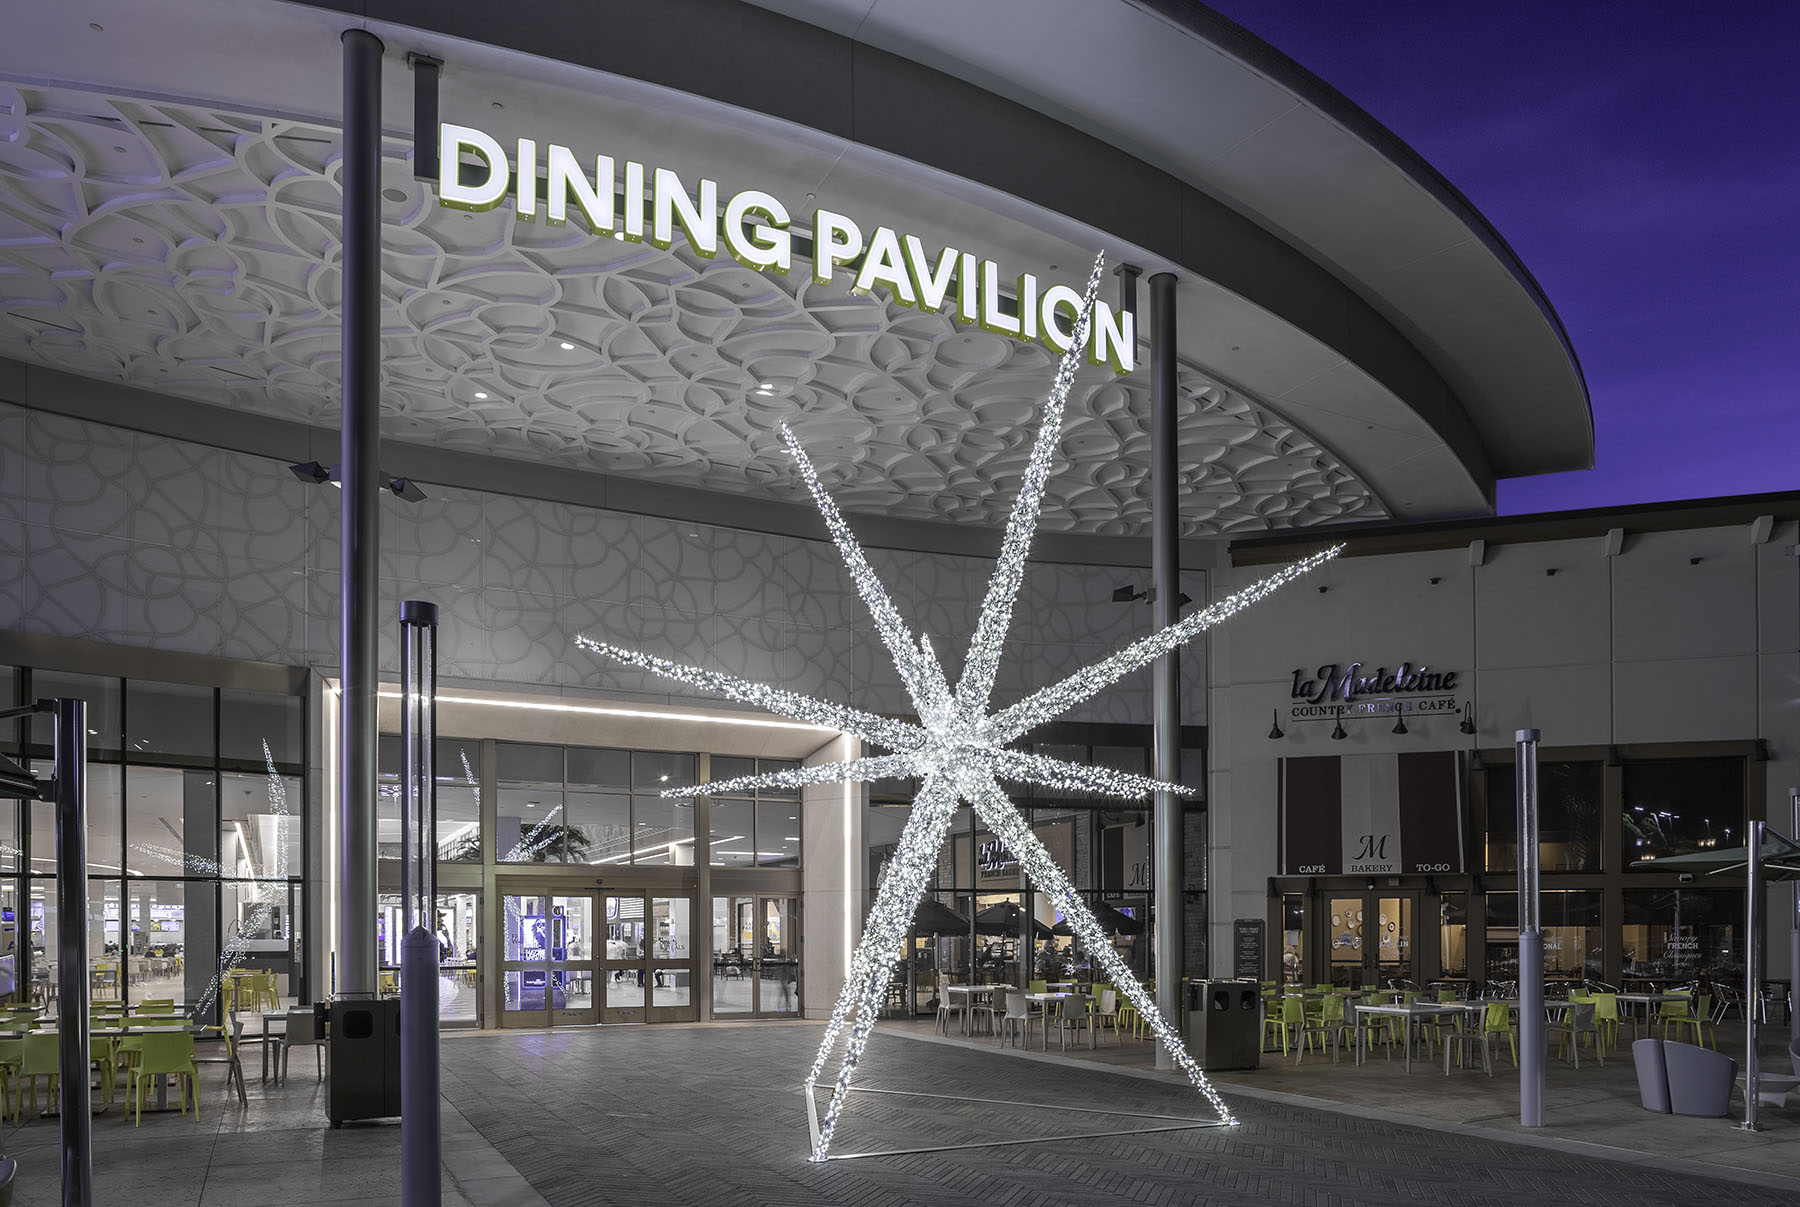 dining pavilion night view at florida mall